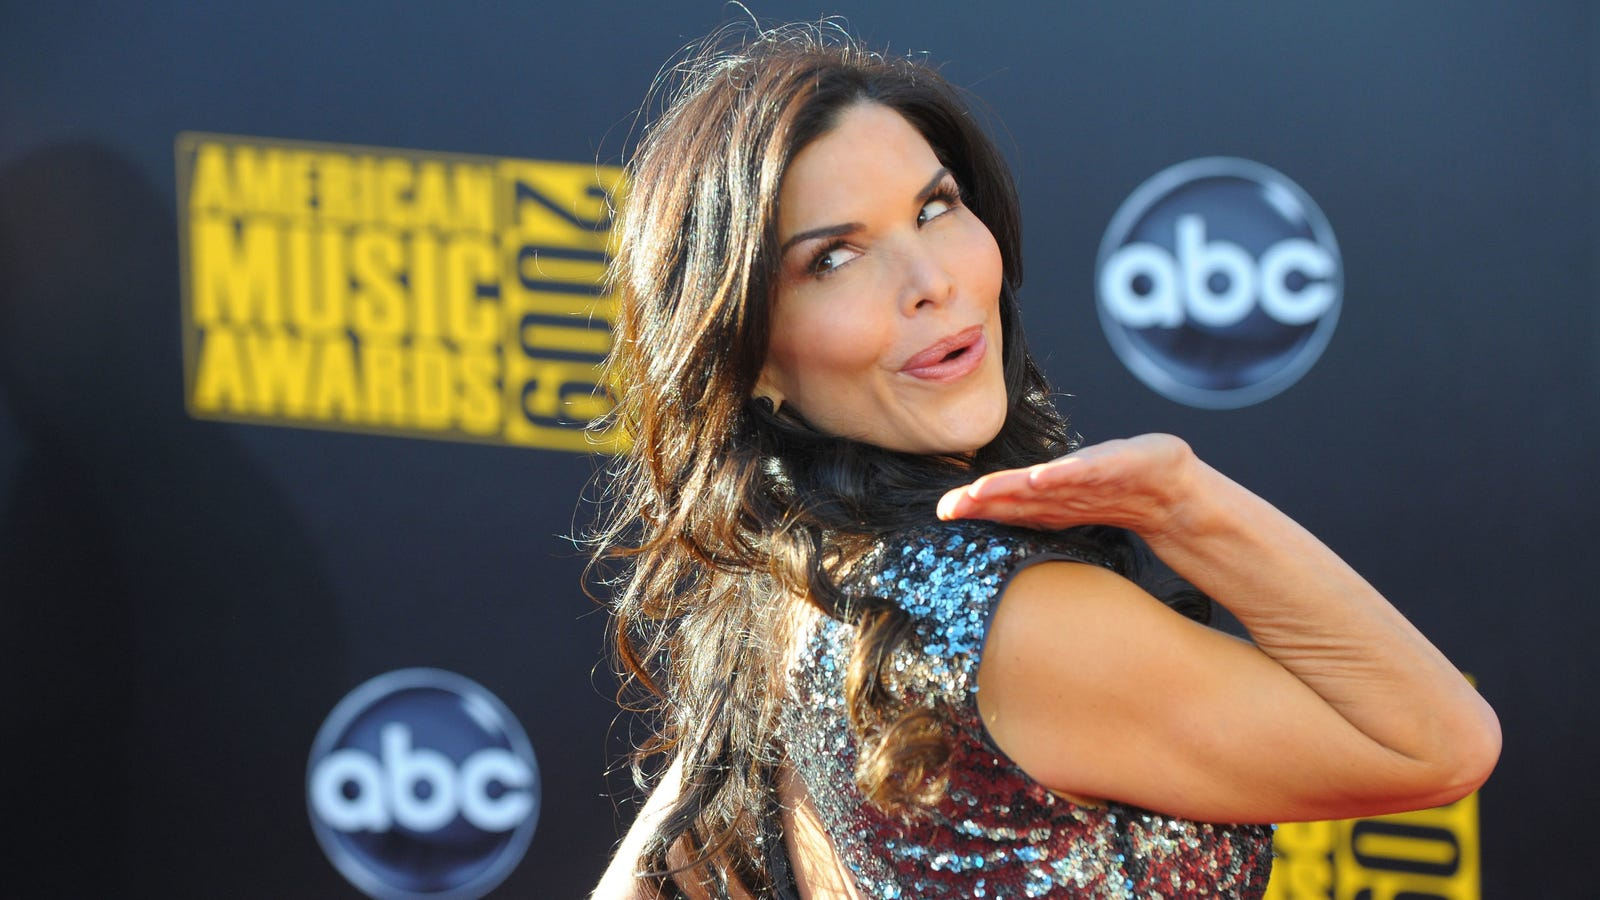 Oh, a Blissful Lauren Sanchez Might Have Accidentally Leaked the Alleged Bezos Dick Pics Herself!?